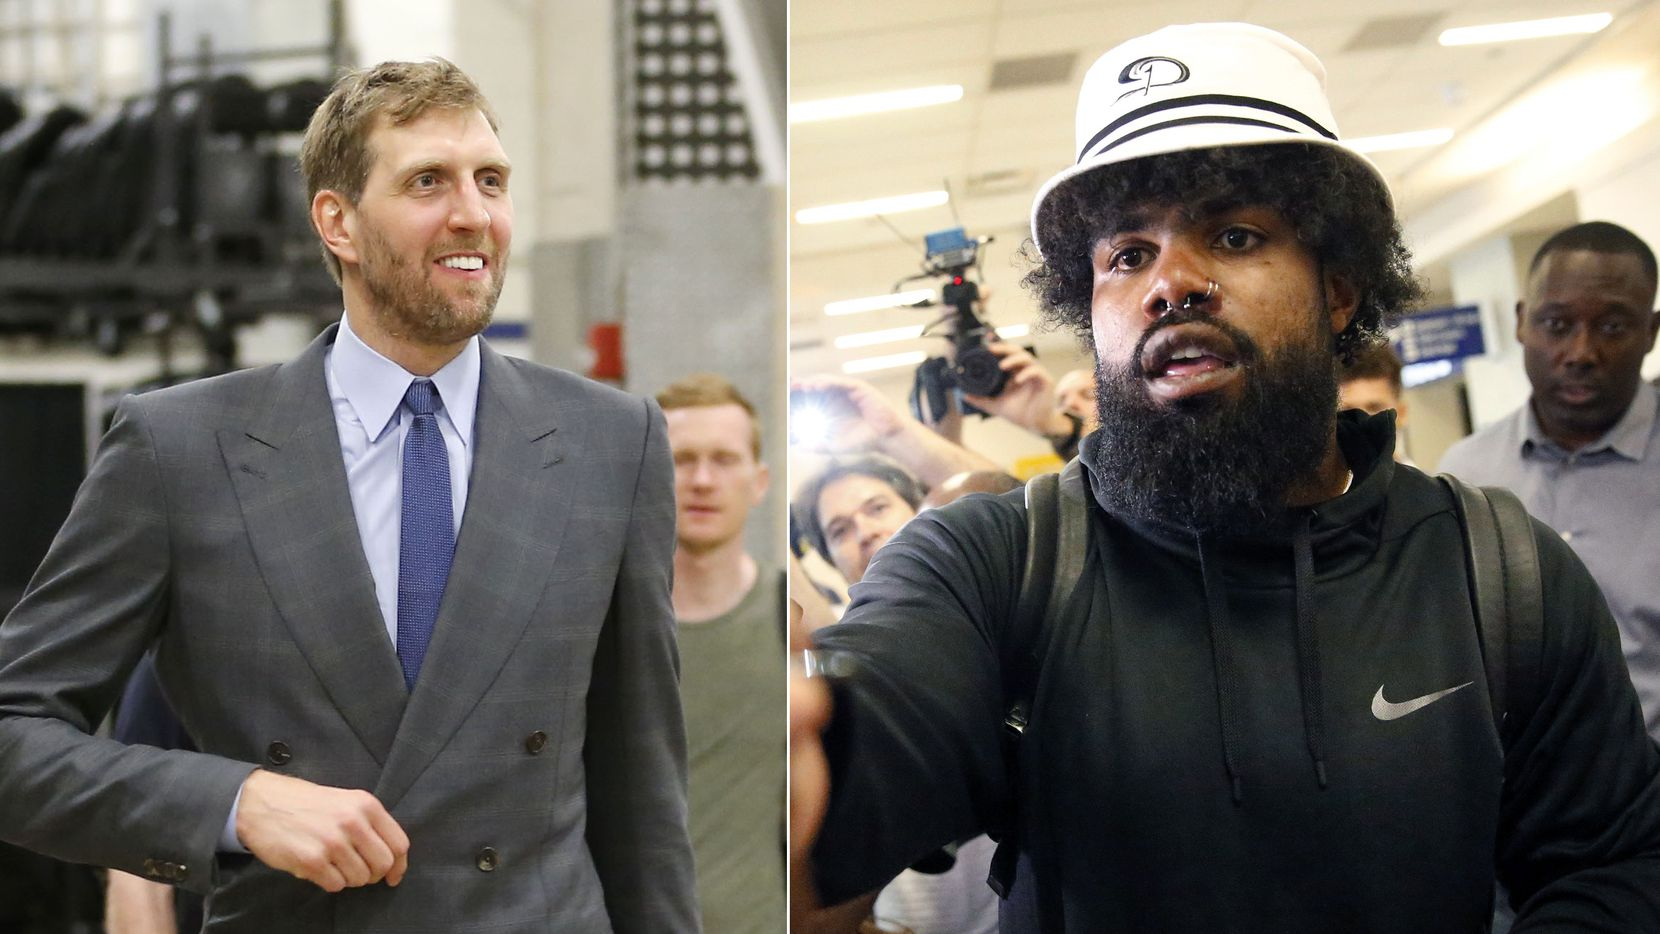 Staff photos: (Left) Retired Dallas Mavericks forward Dirk Nowitzki; (Right) Dallas Cowboys running back Ezekiel Elliott.